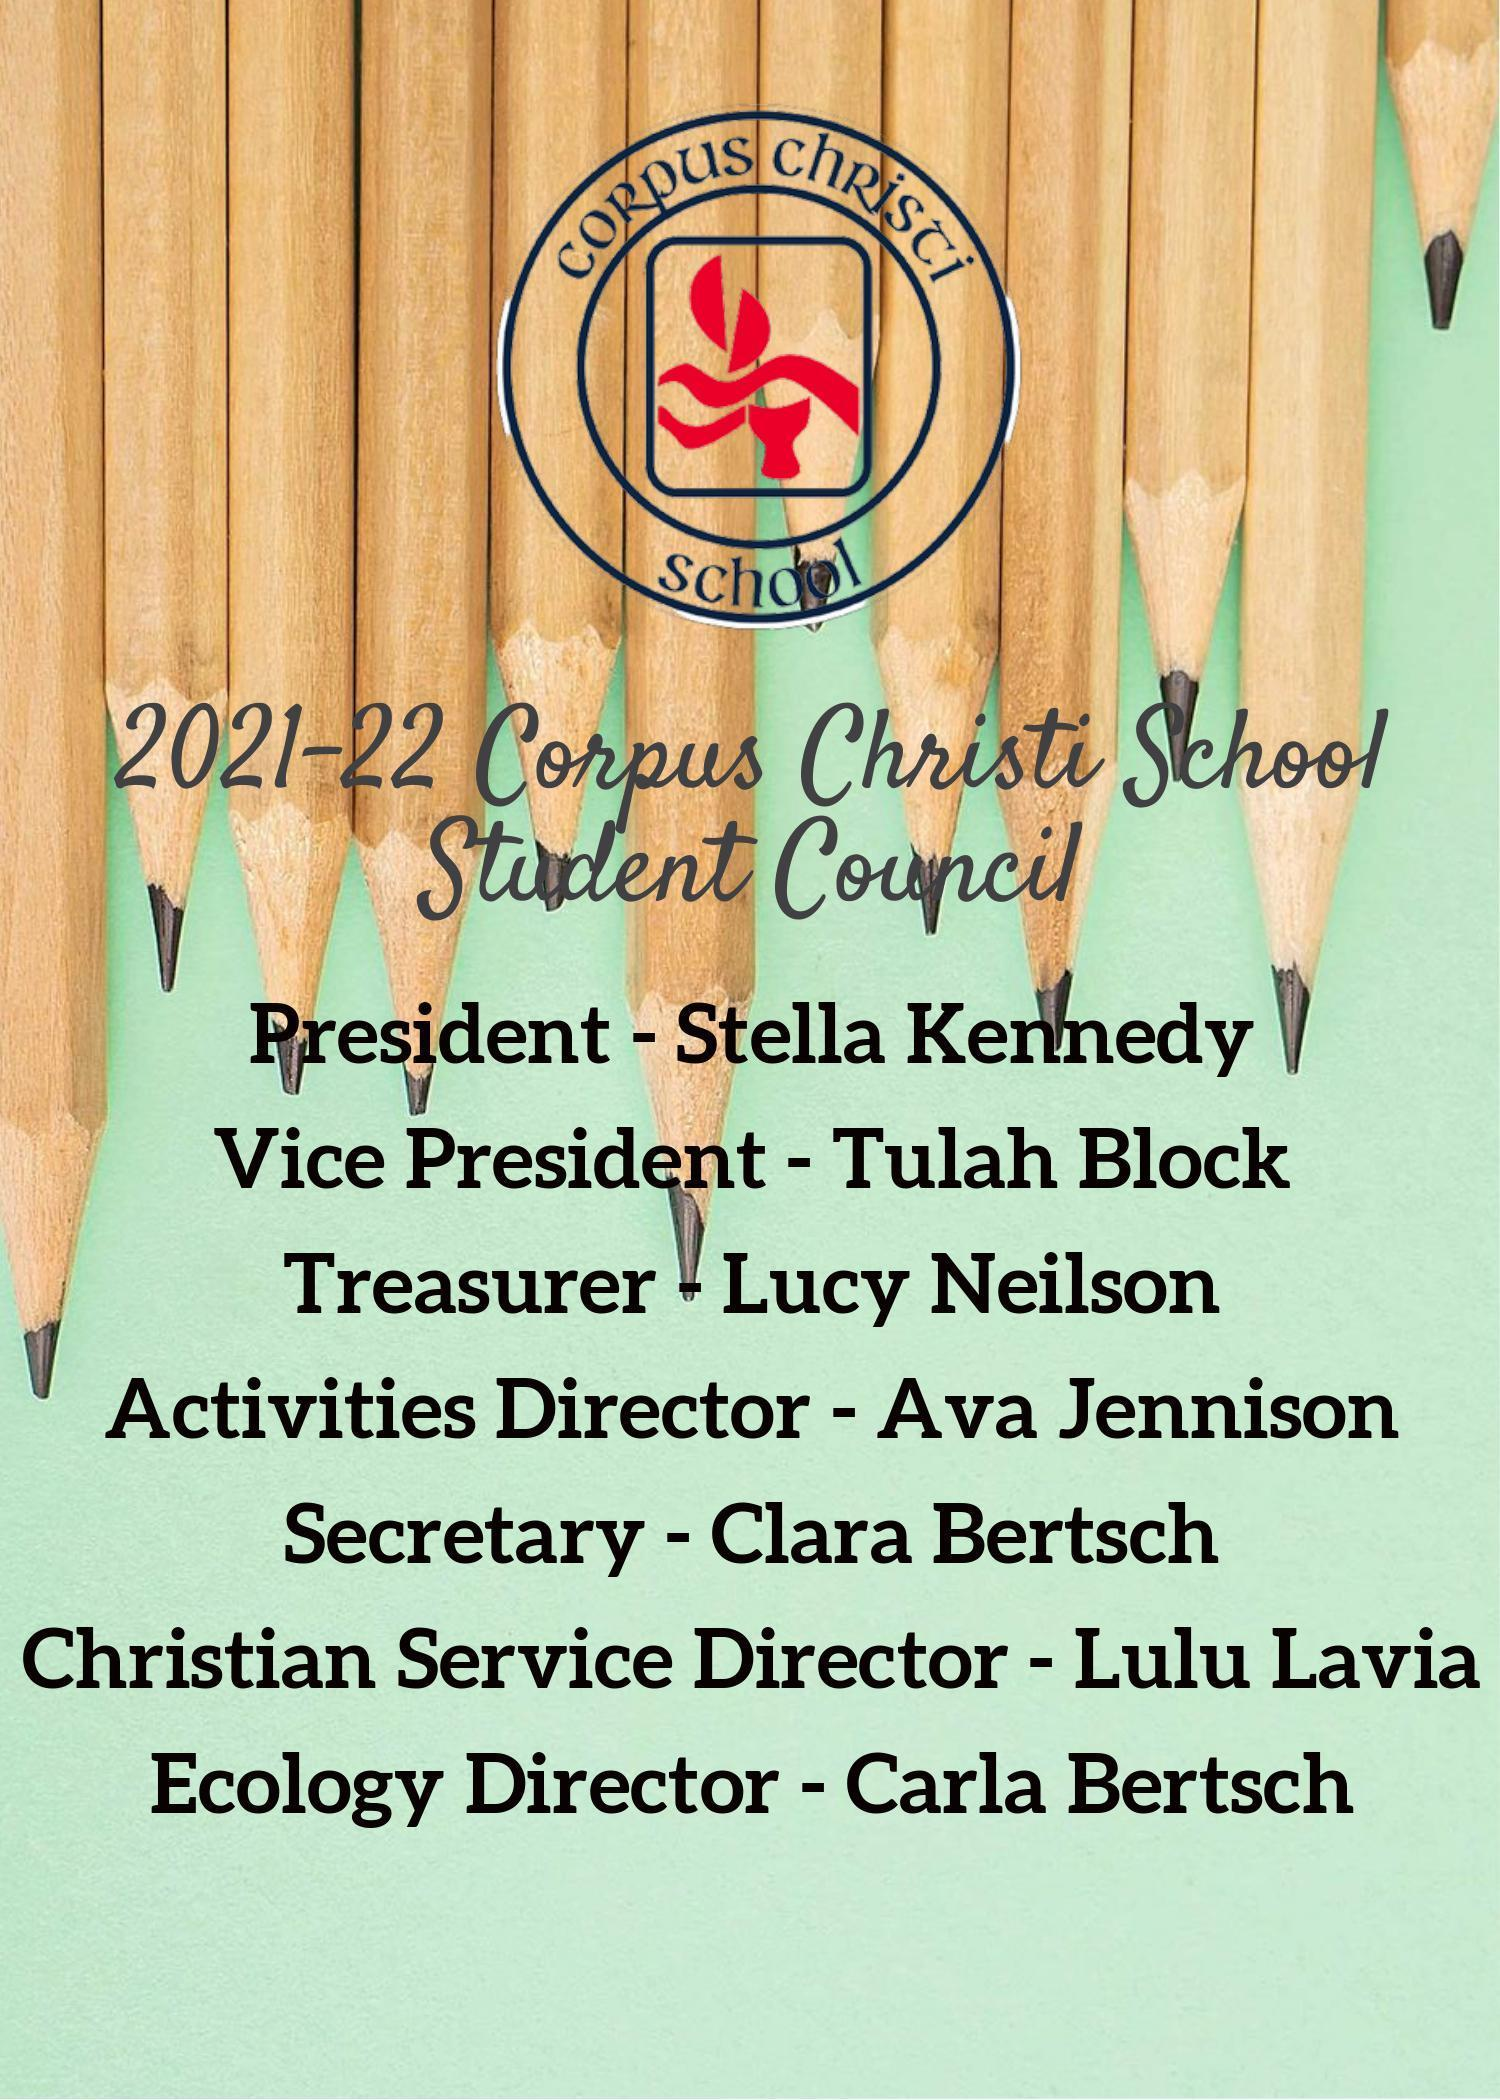 Congratulations to Our Newly Elected 2021-22 Student Council Image